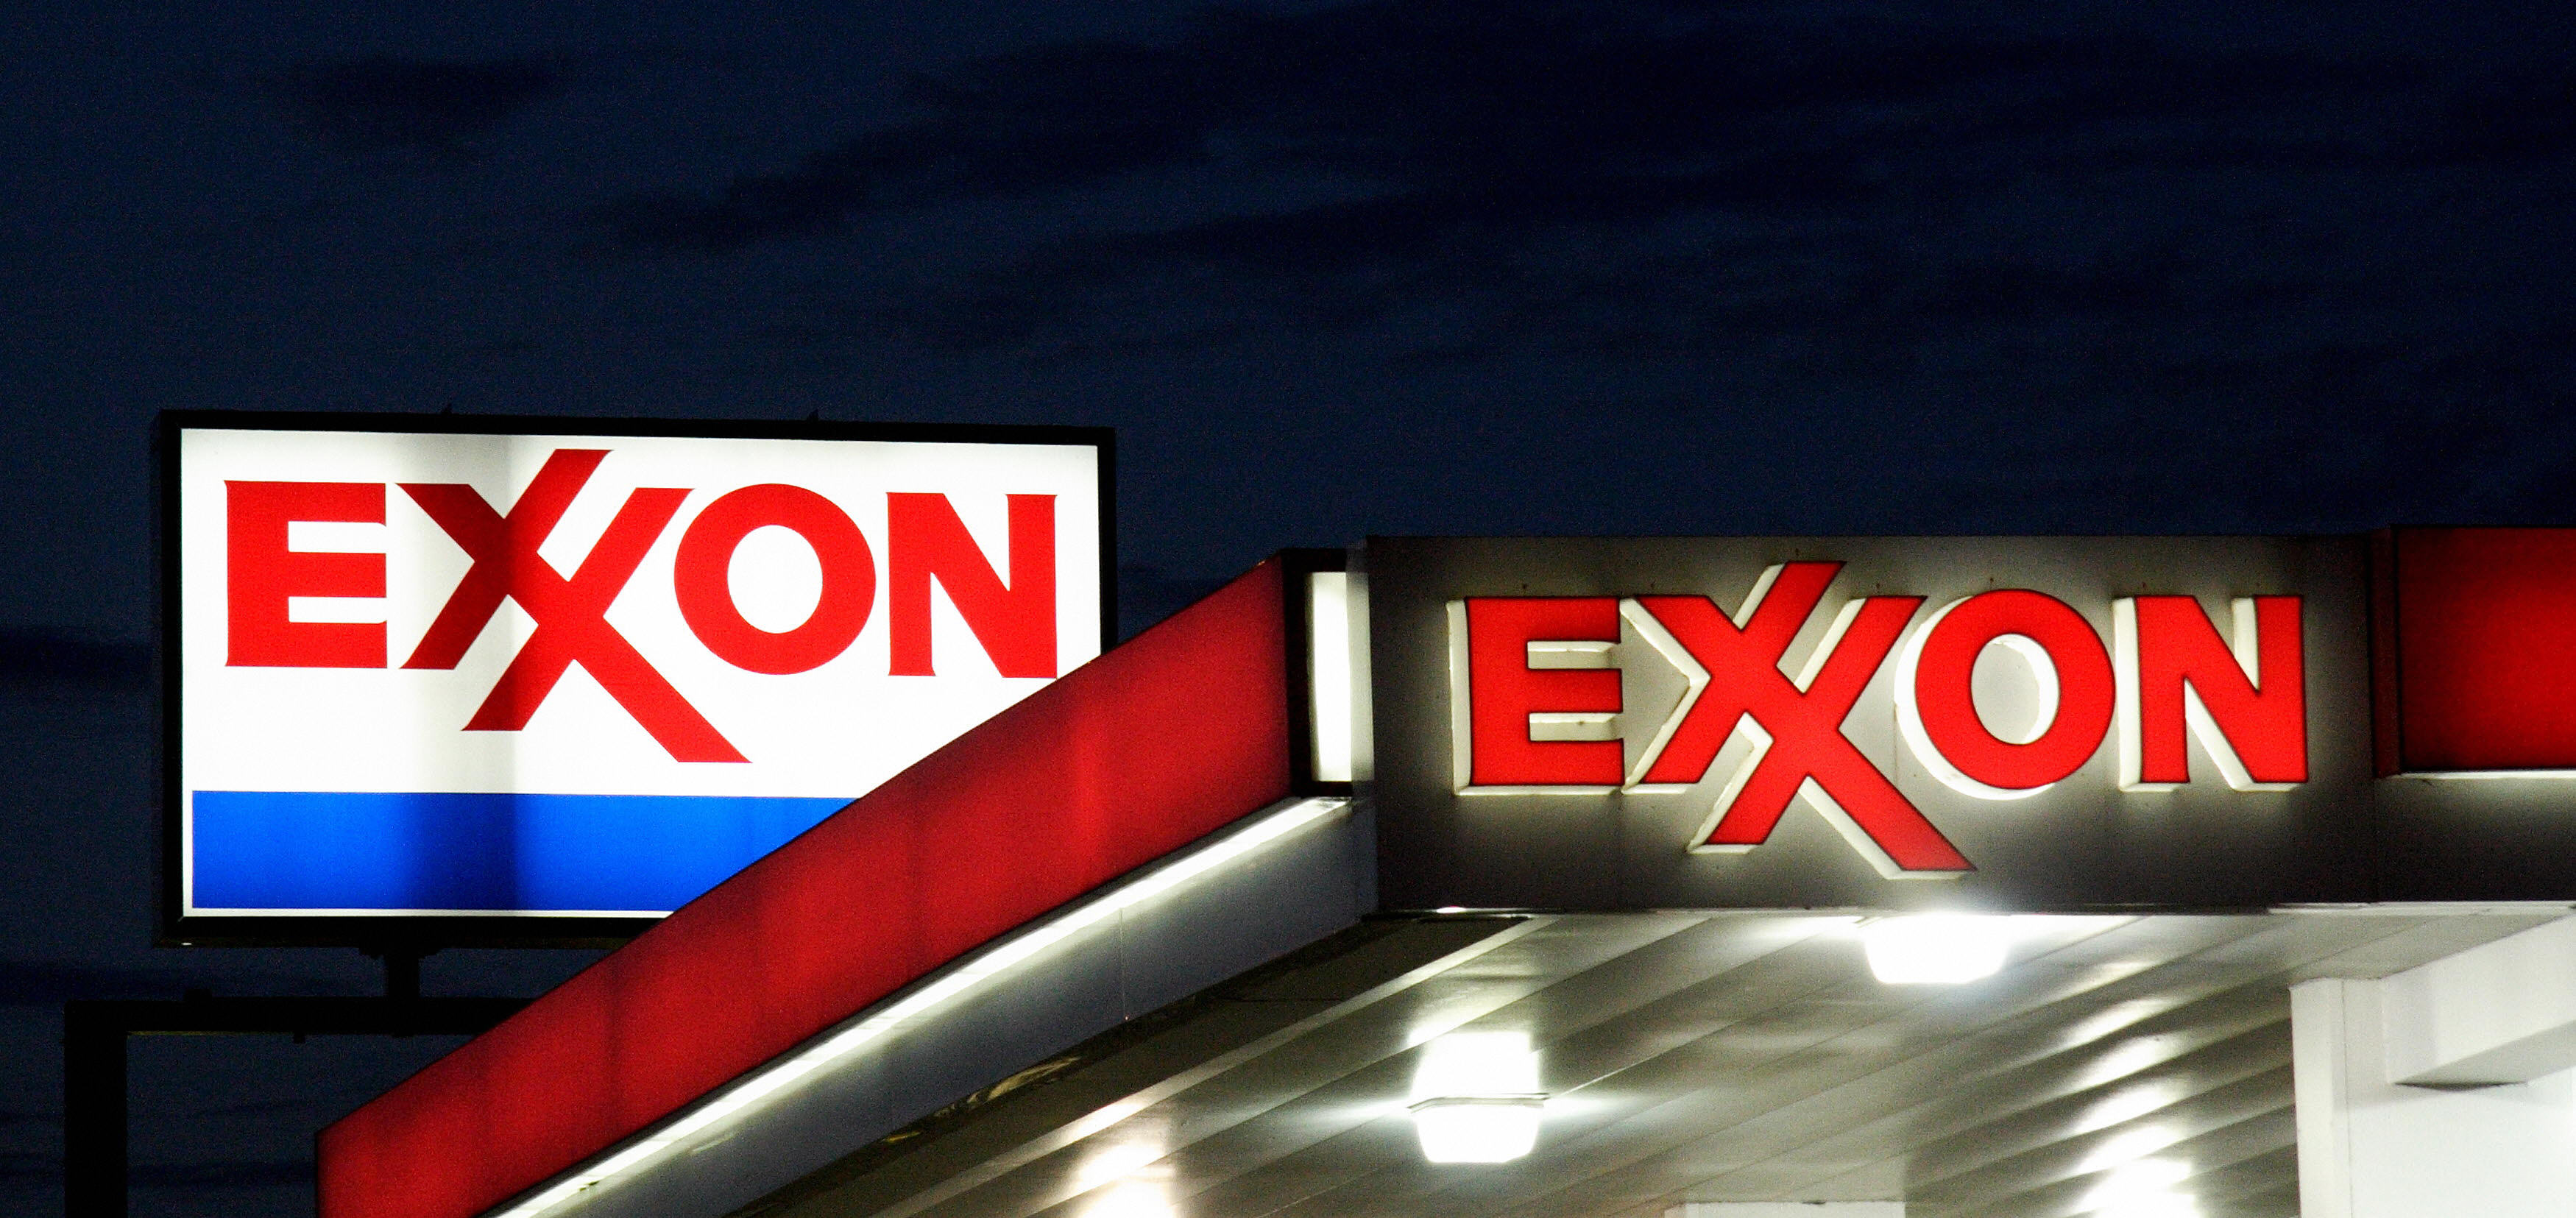 A Exxon sign is seen at a station on Sep